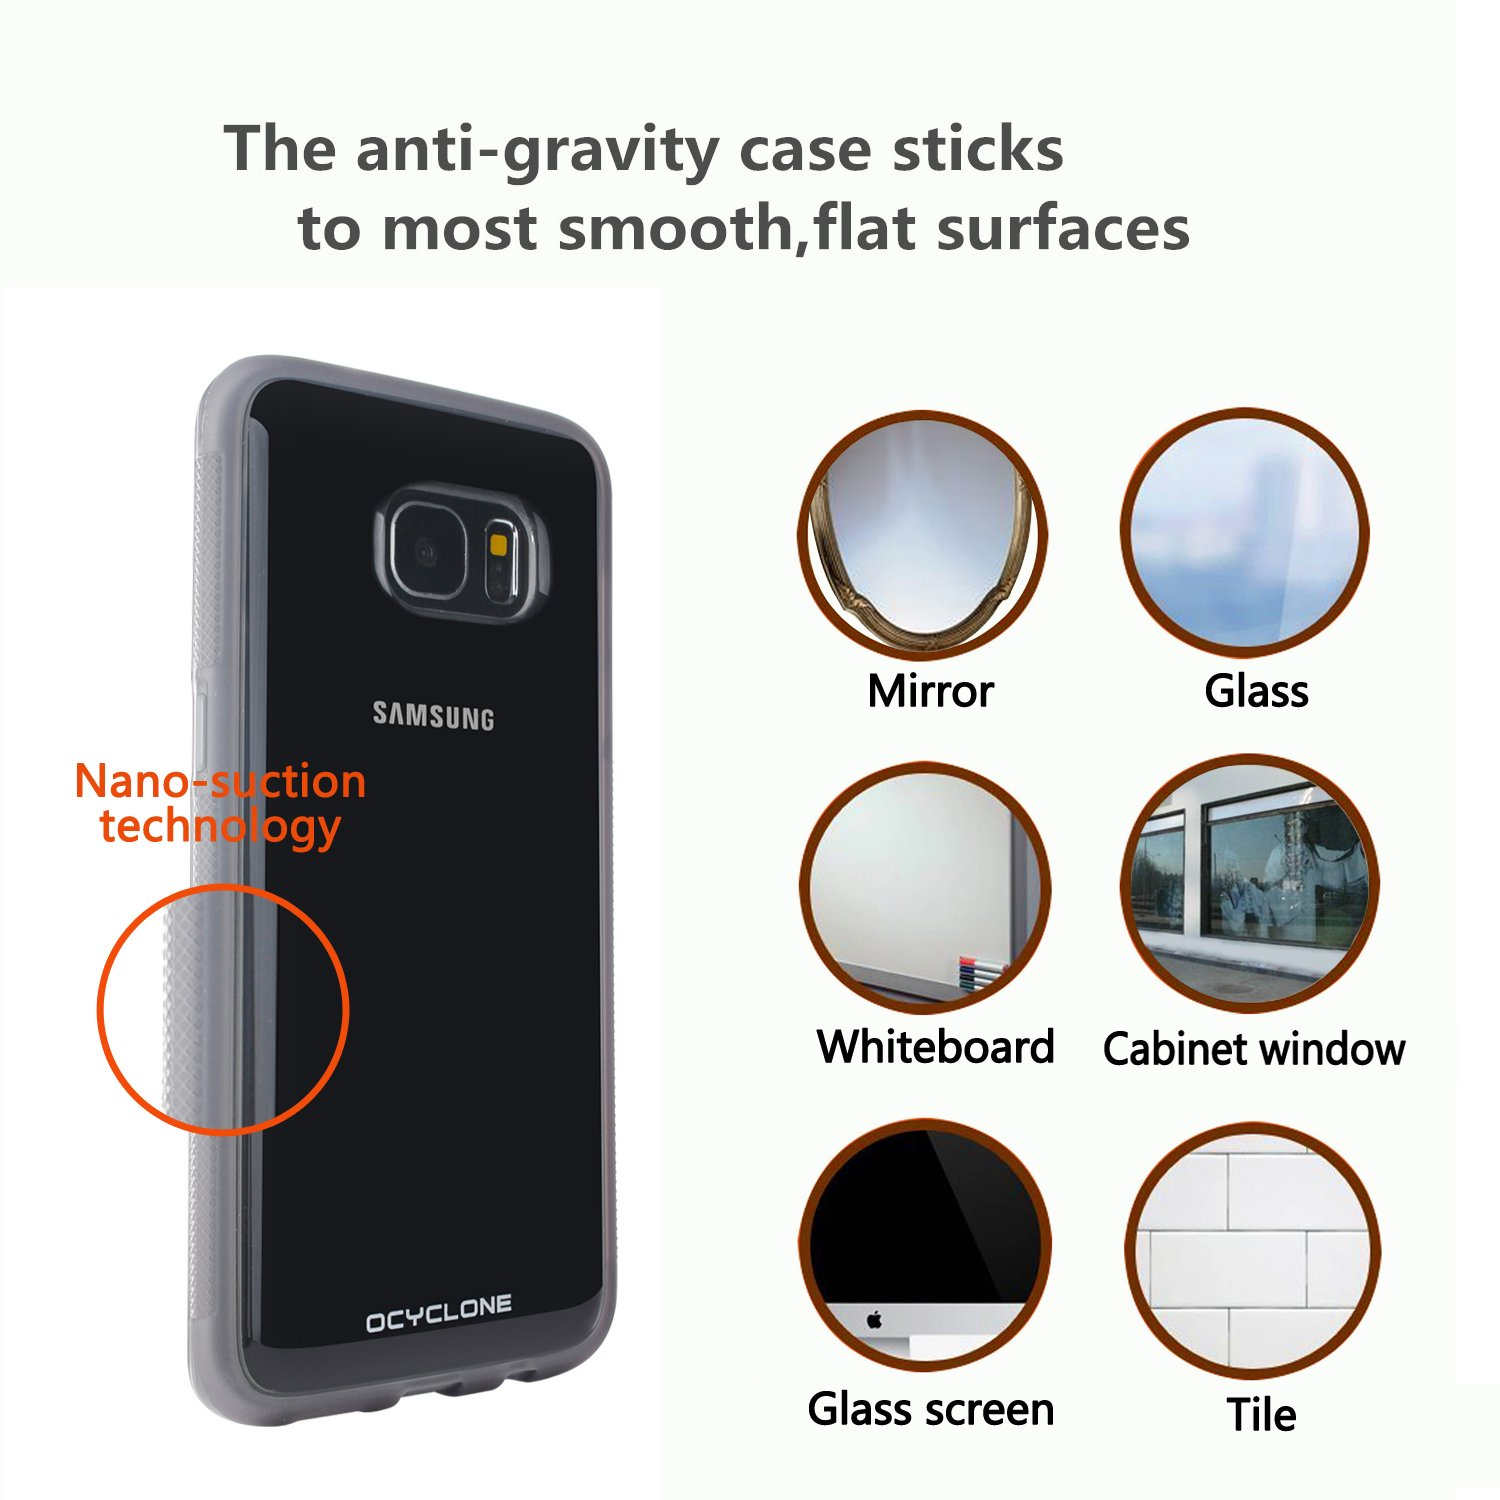 Furniture amp accessories 26 quot camo padded folding anti gravity chair - Amazon Com Samsung Galaxy S7 Edge Anti Gravity Phone Case Nano Hands Free Selfie Clear Protective Goat Case Stick To Mirror Glass Tile Smooth Surface